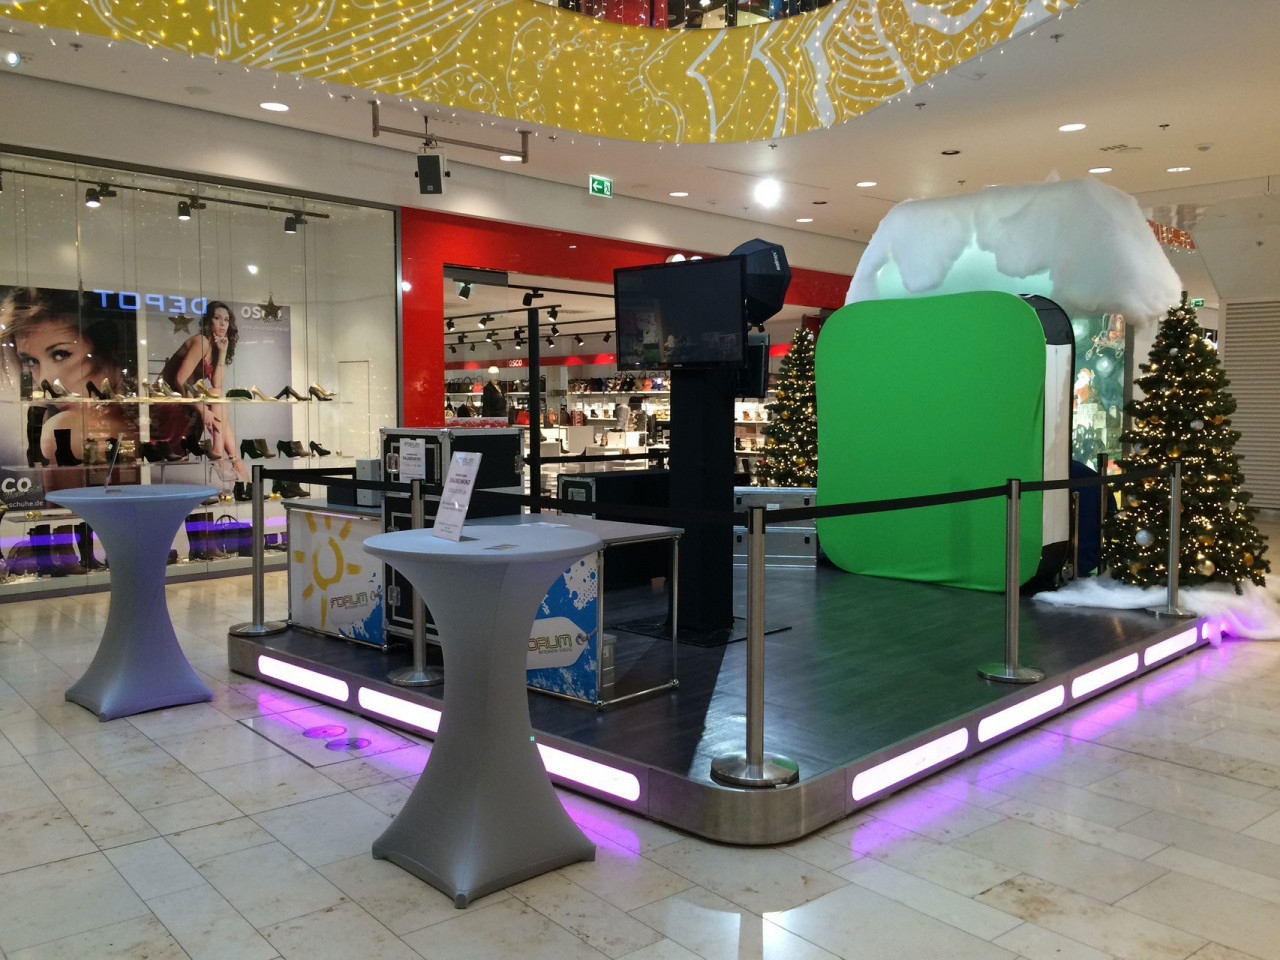 Video Flip, Mobile Photo Flip Book Studio: Set Up with a Green Screen for an Event at a Mall